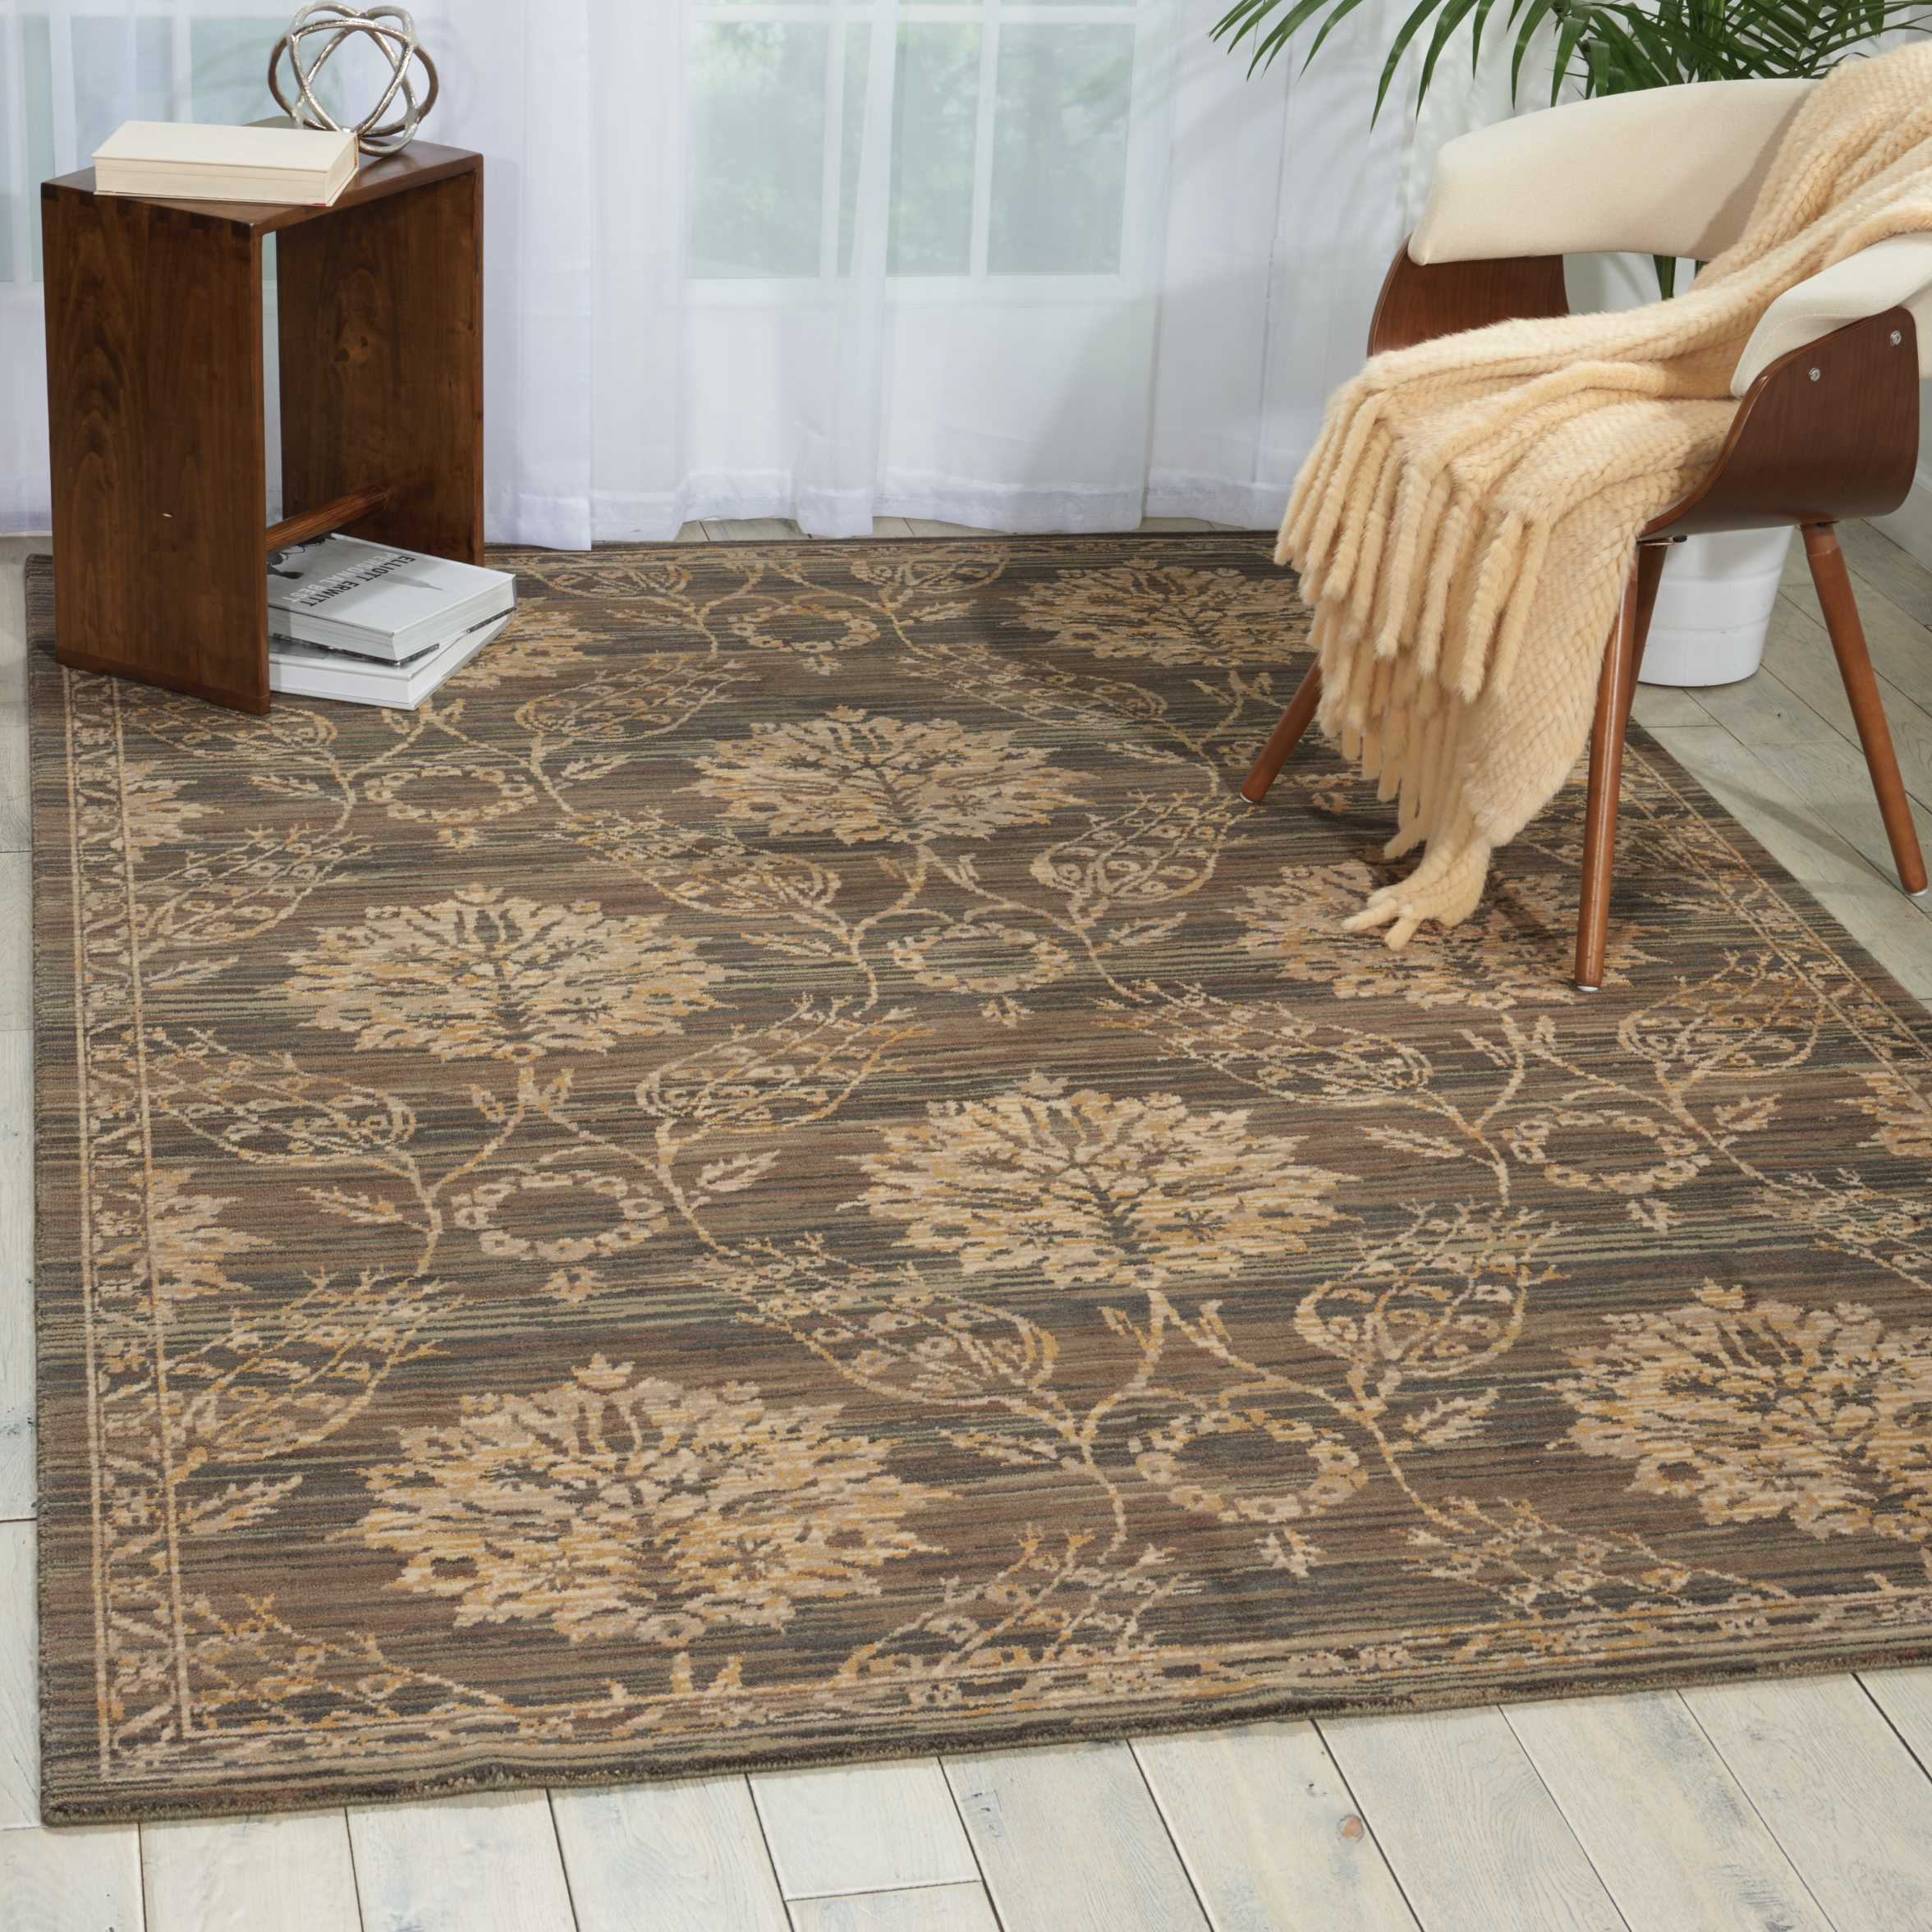 Nourison Silk Elements SKE31 Graphite Rug